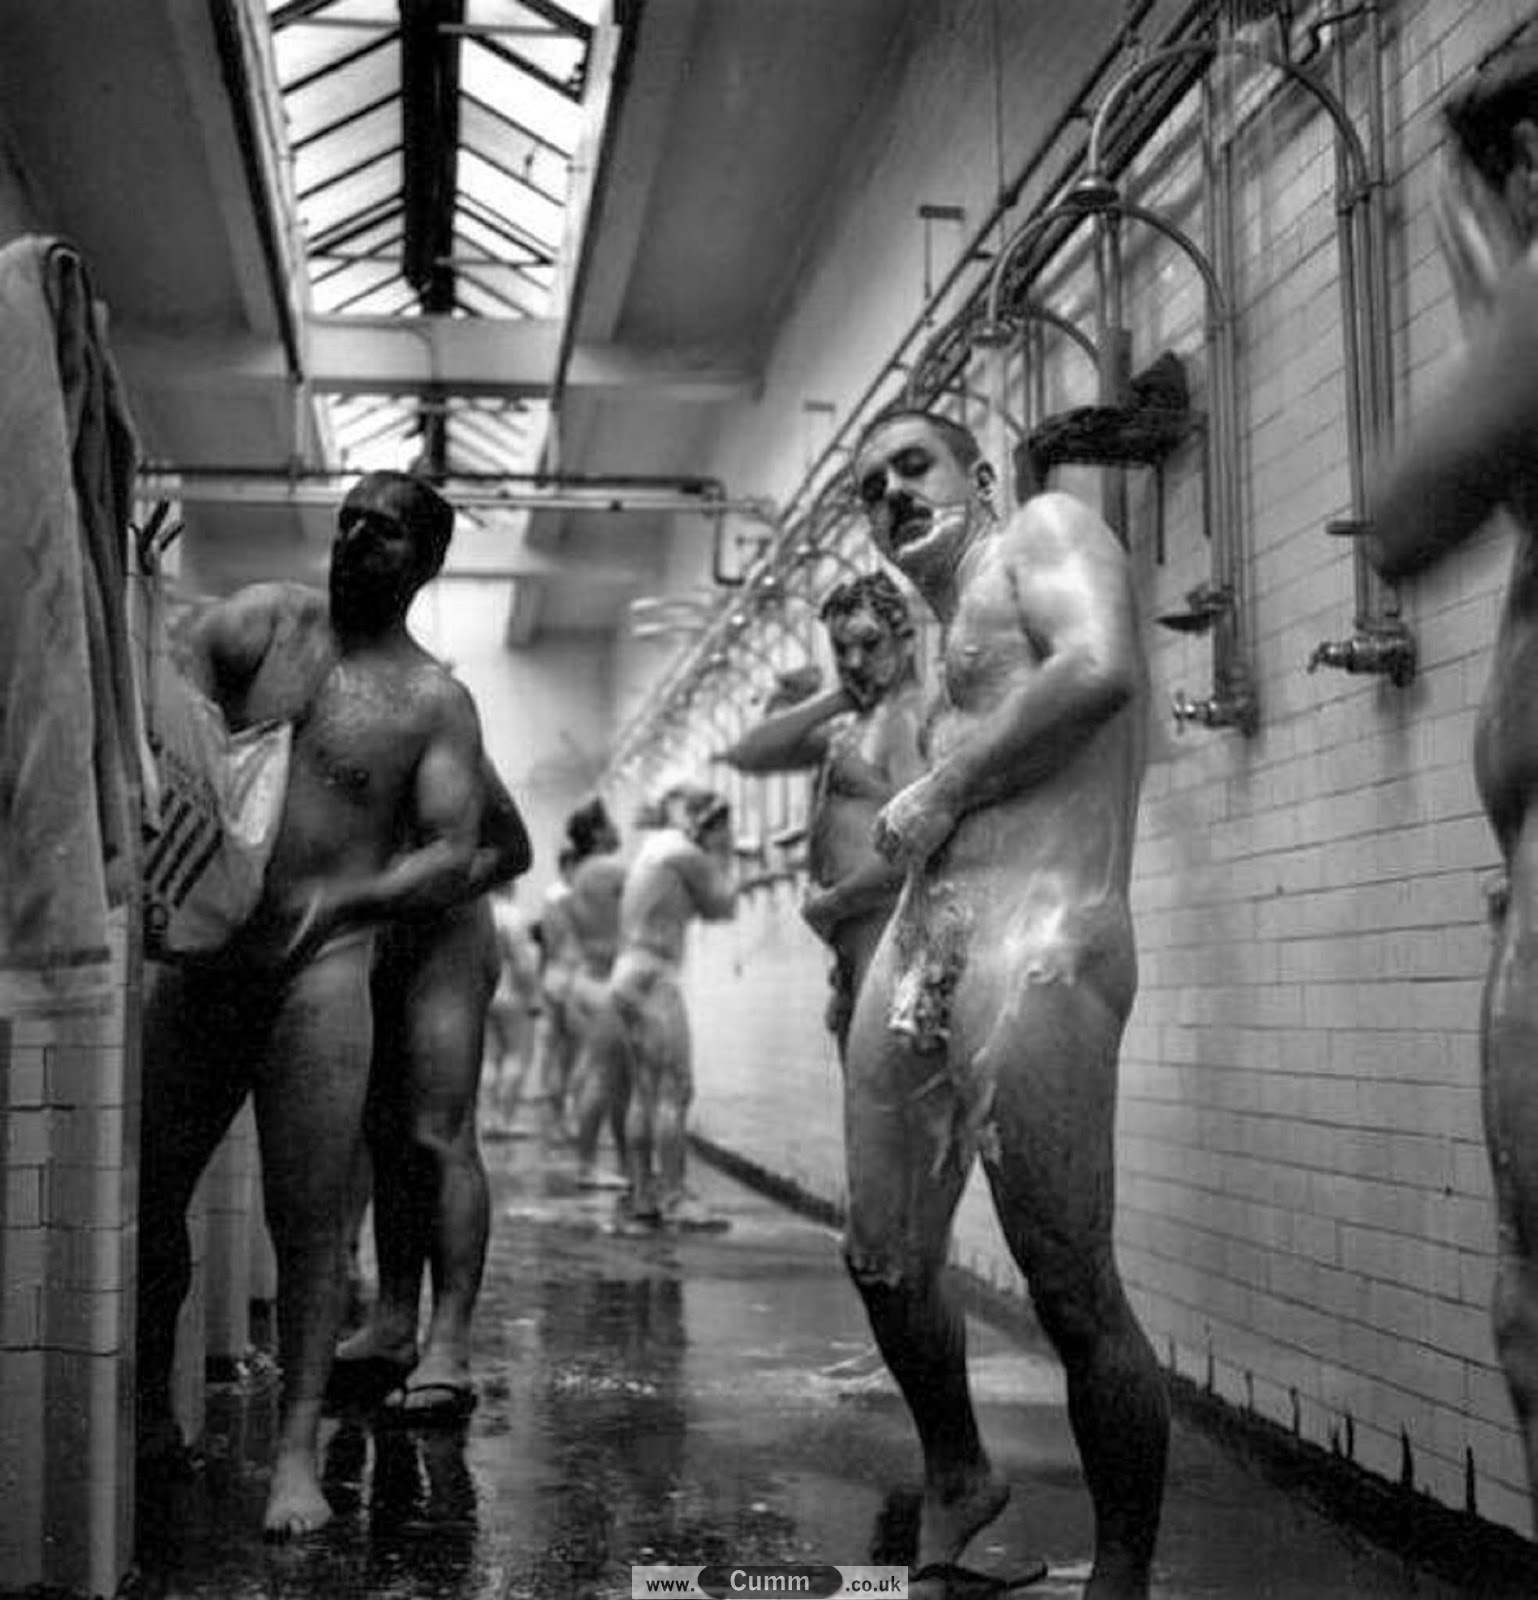 Communal showers full of bare naked guys